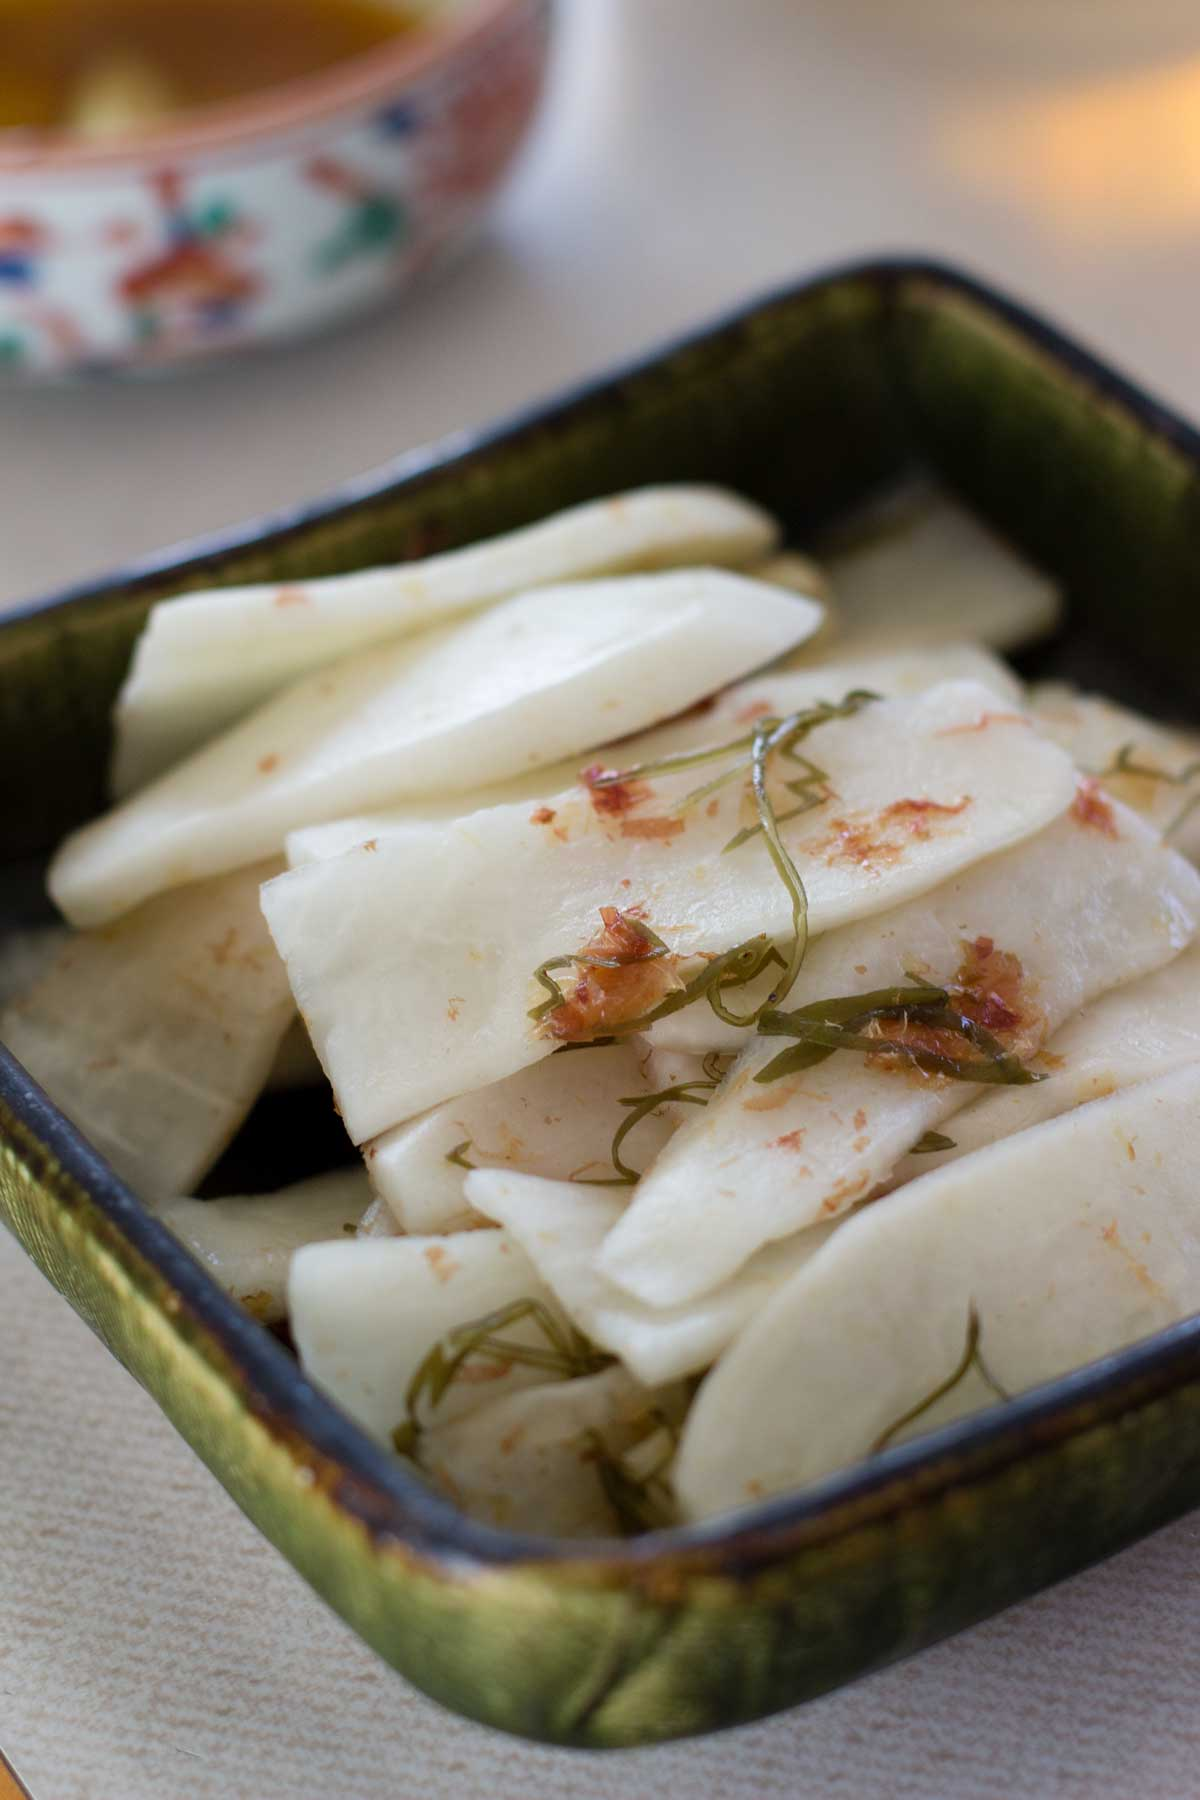 Pickled Daikon Radish